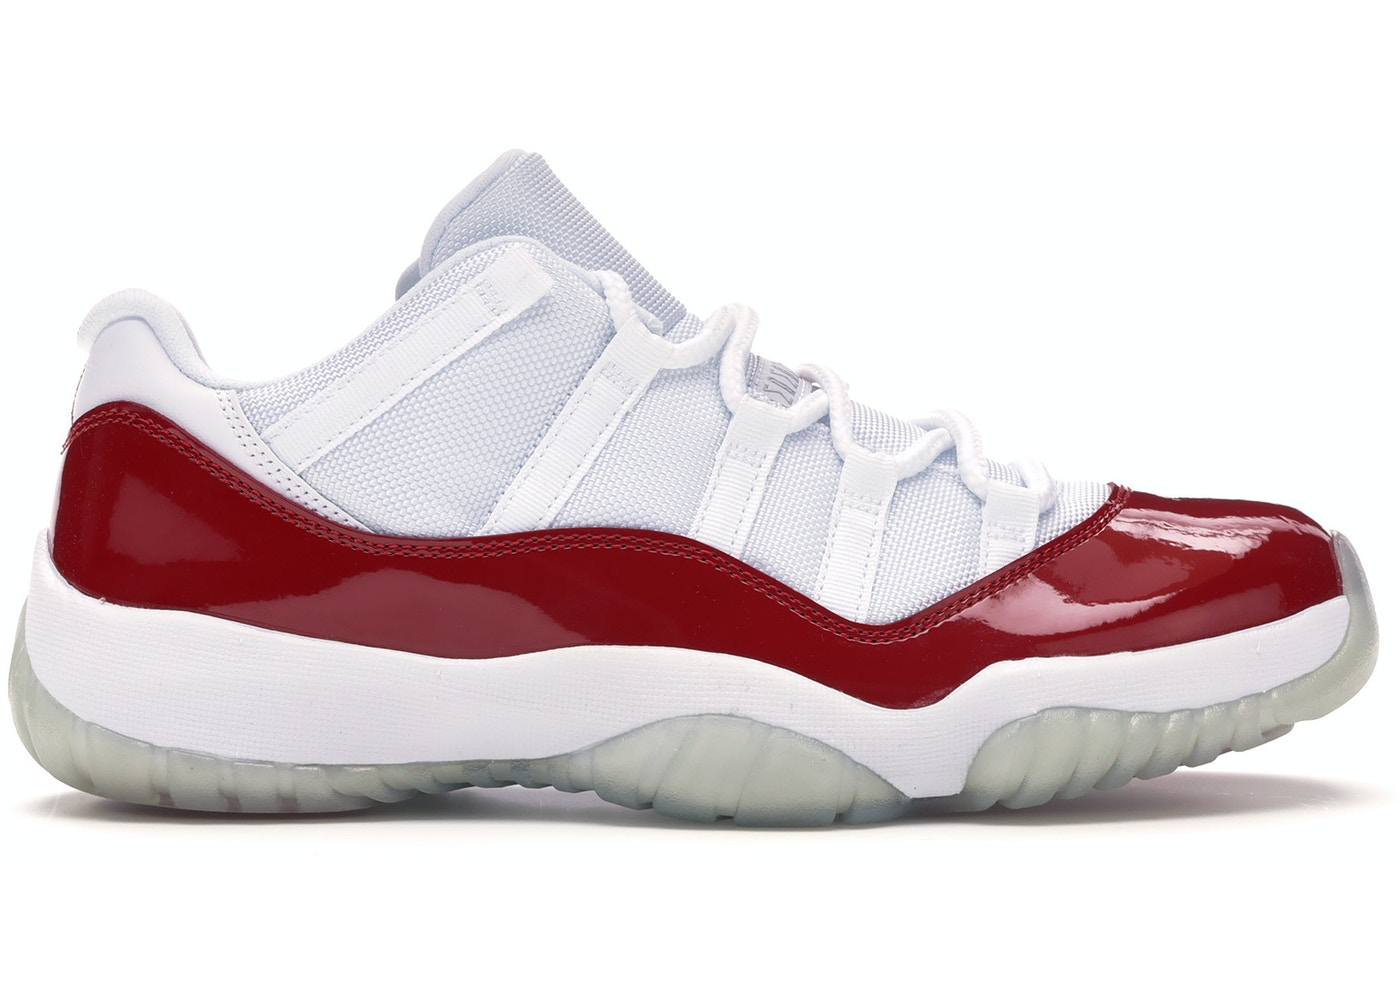 buy popular 628df 48274 Jordan 11 Retro Low Cherry (2016)